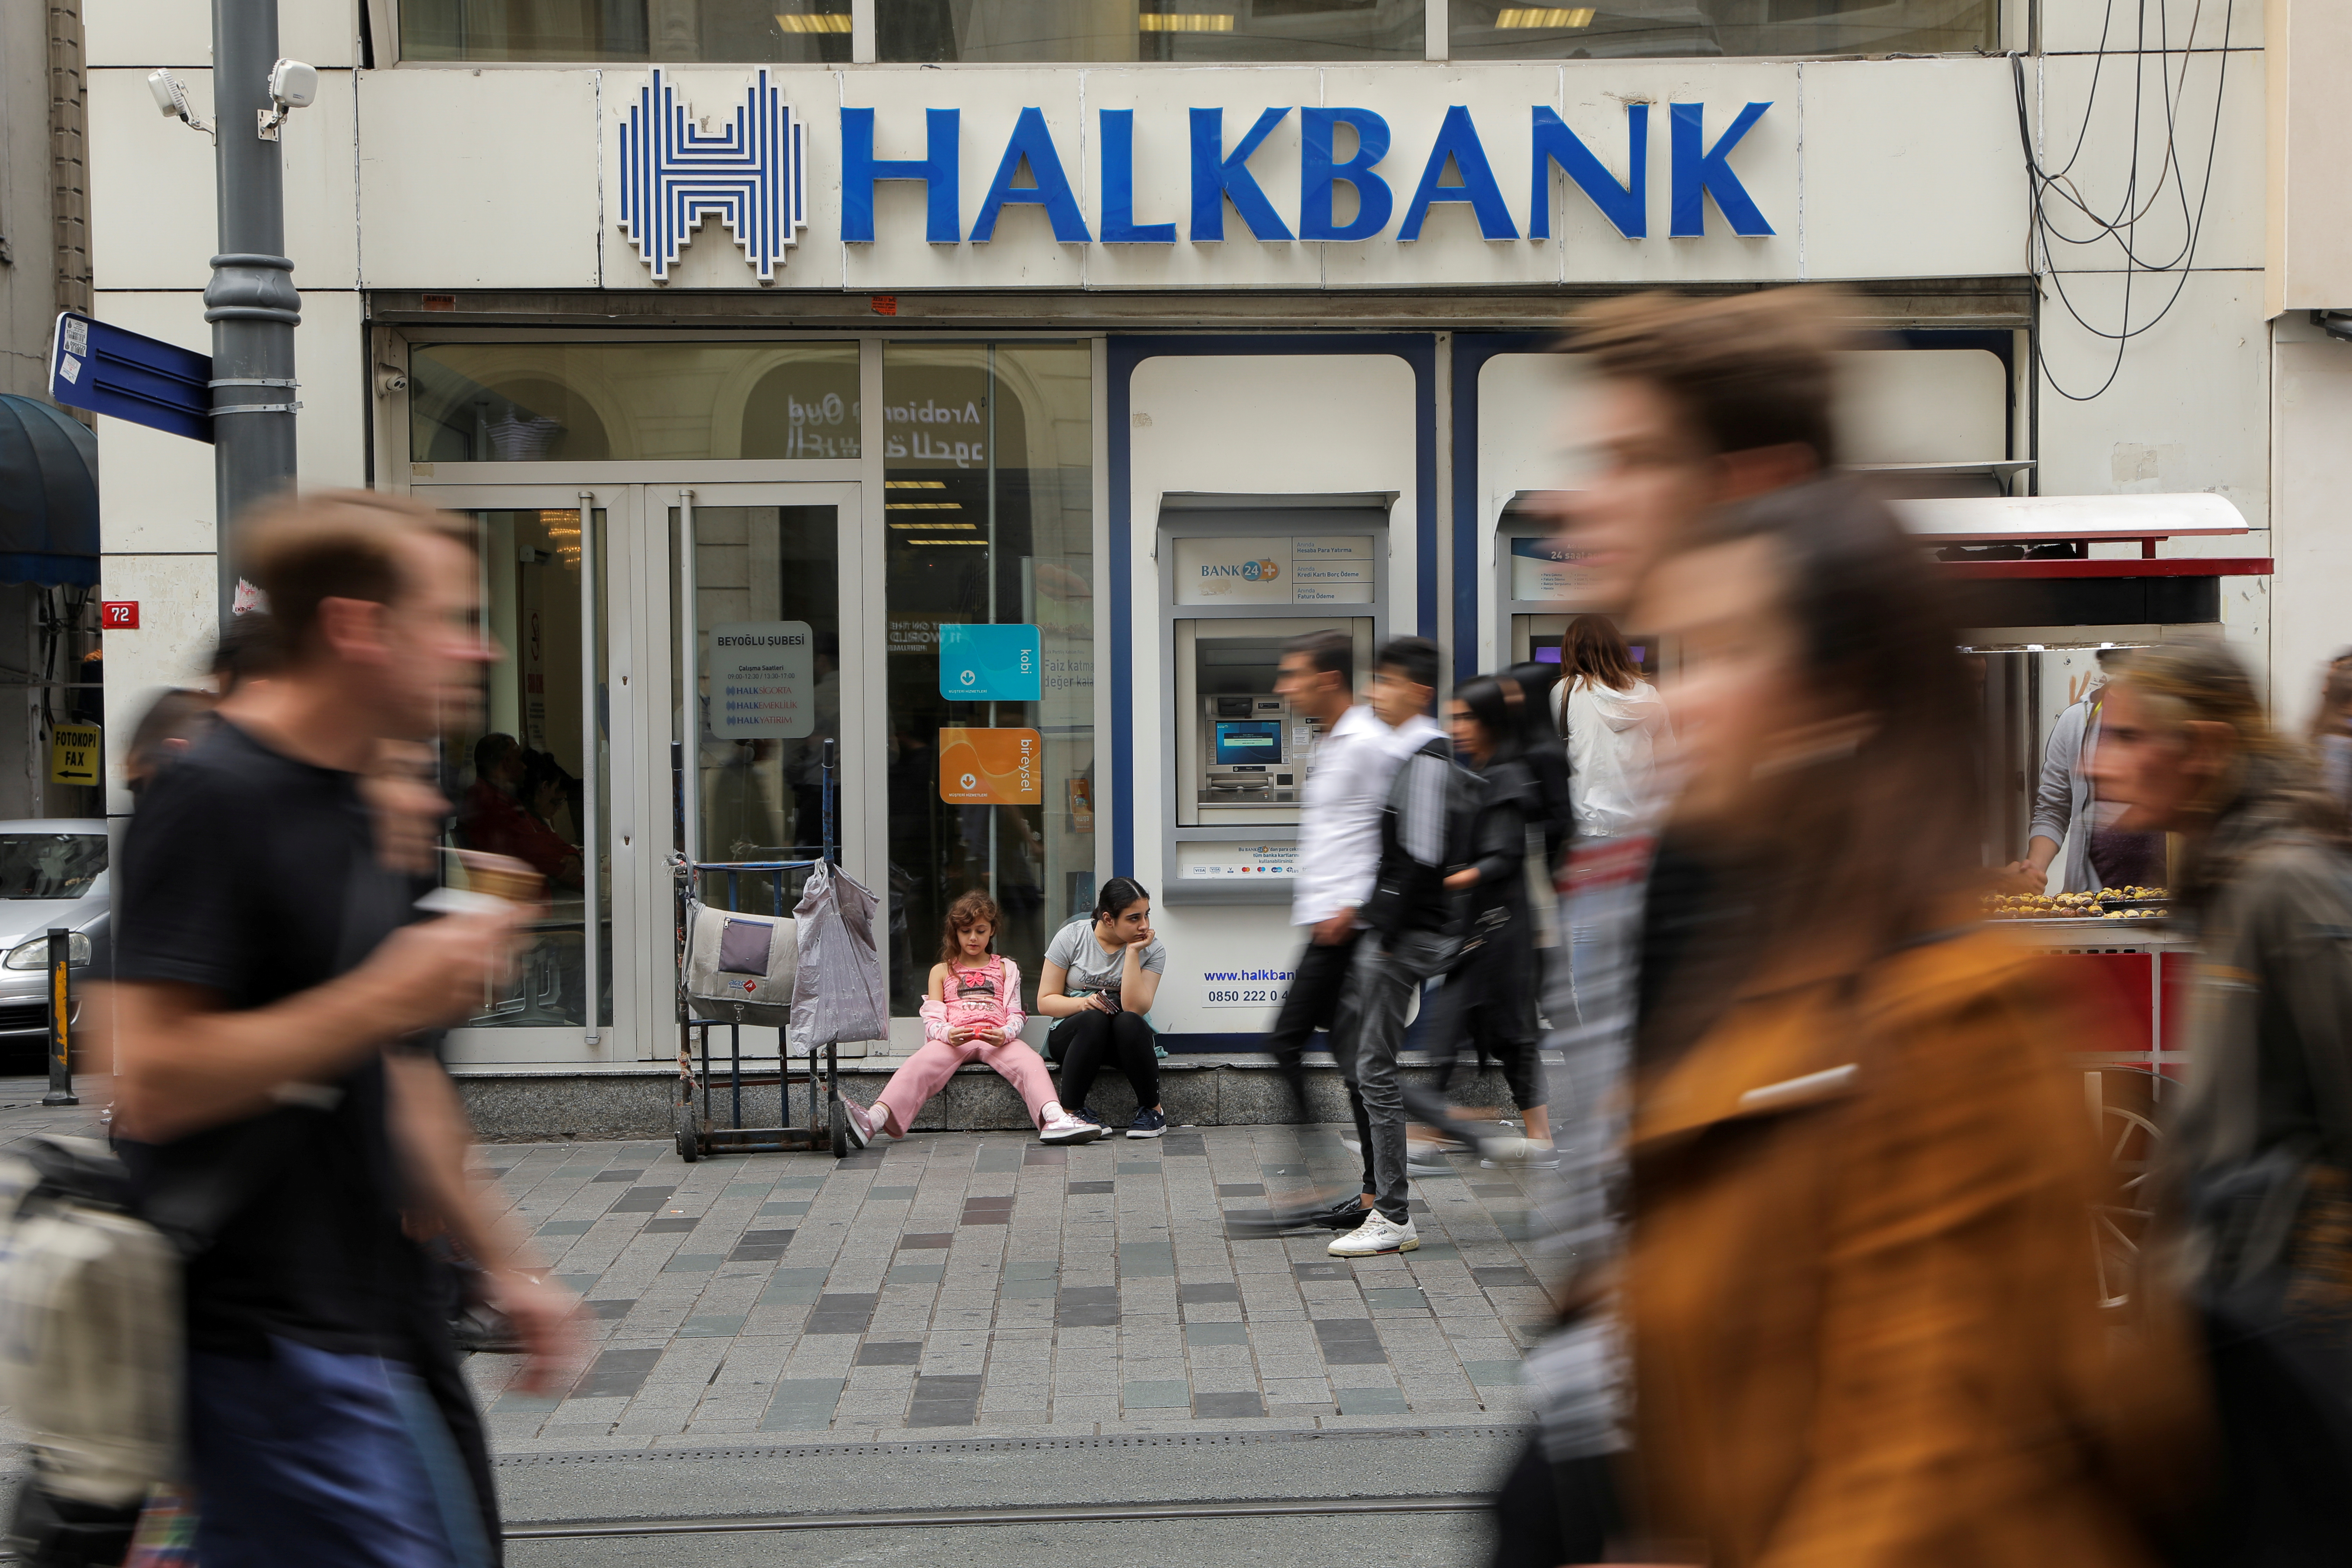 People walk past a branch of Halkbank in central Istanbul, Turkey, October 16, 2019. REUTERS/Huseyin Aldemir/File Photo